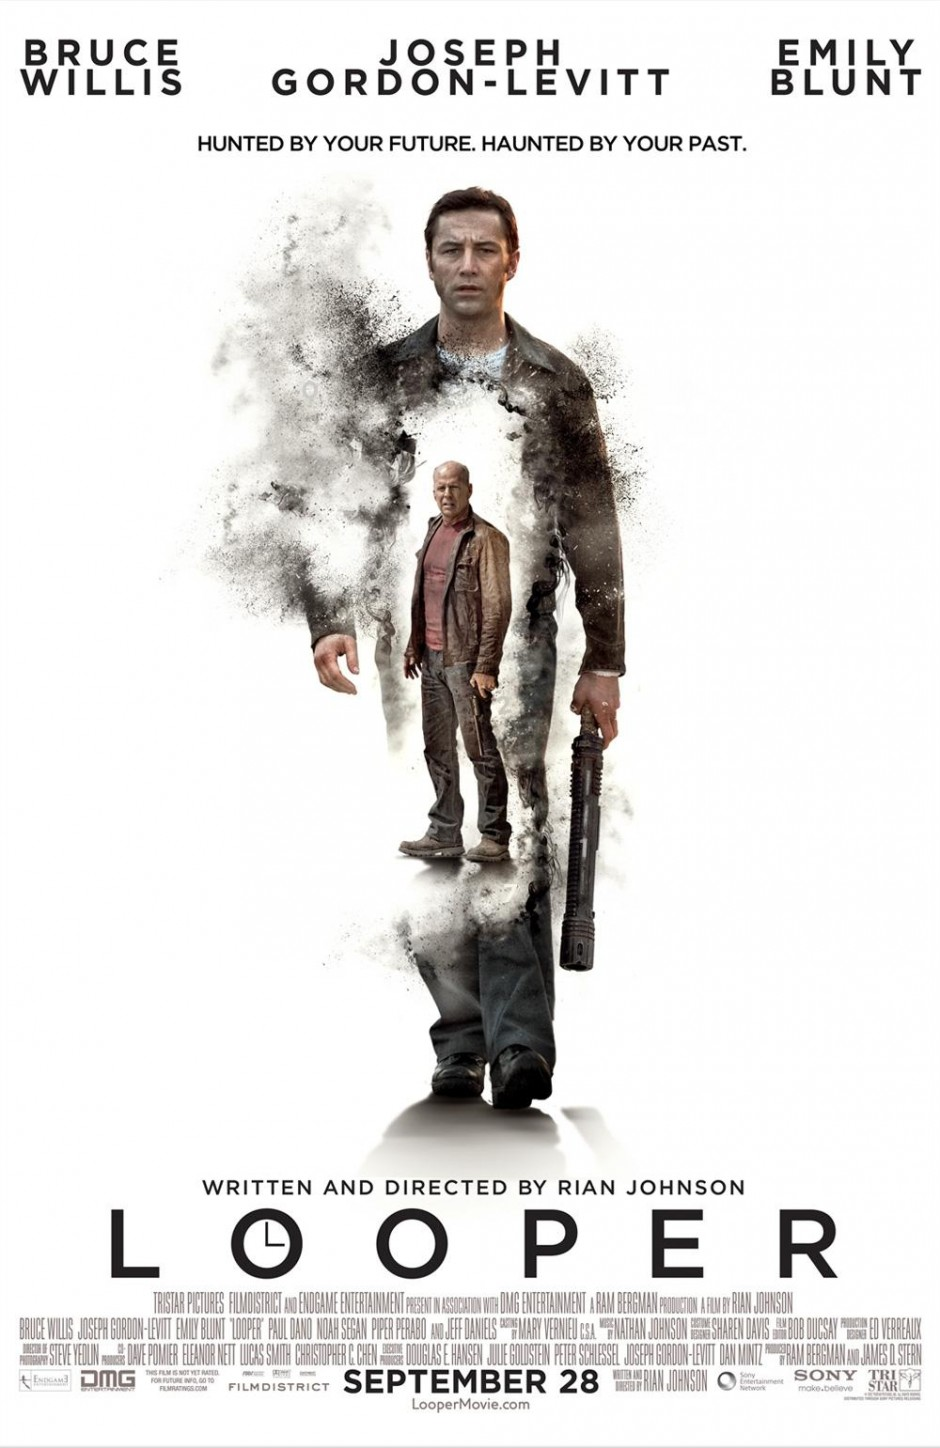 Poster for the 2012 film